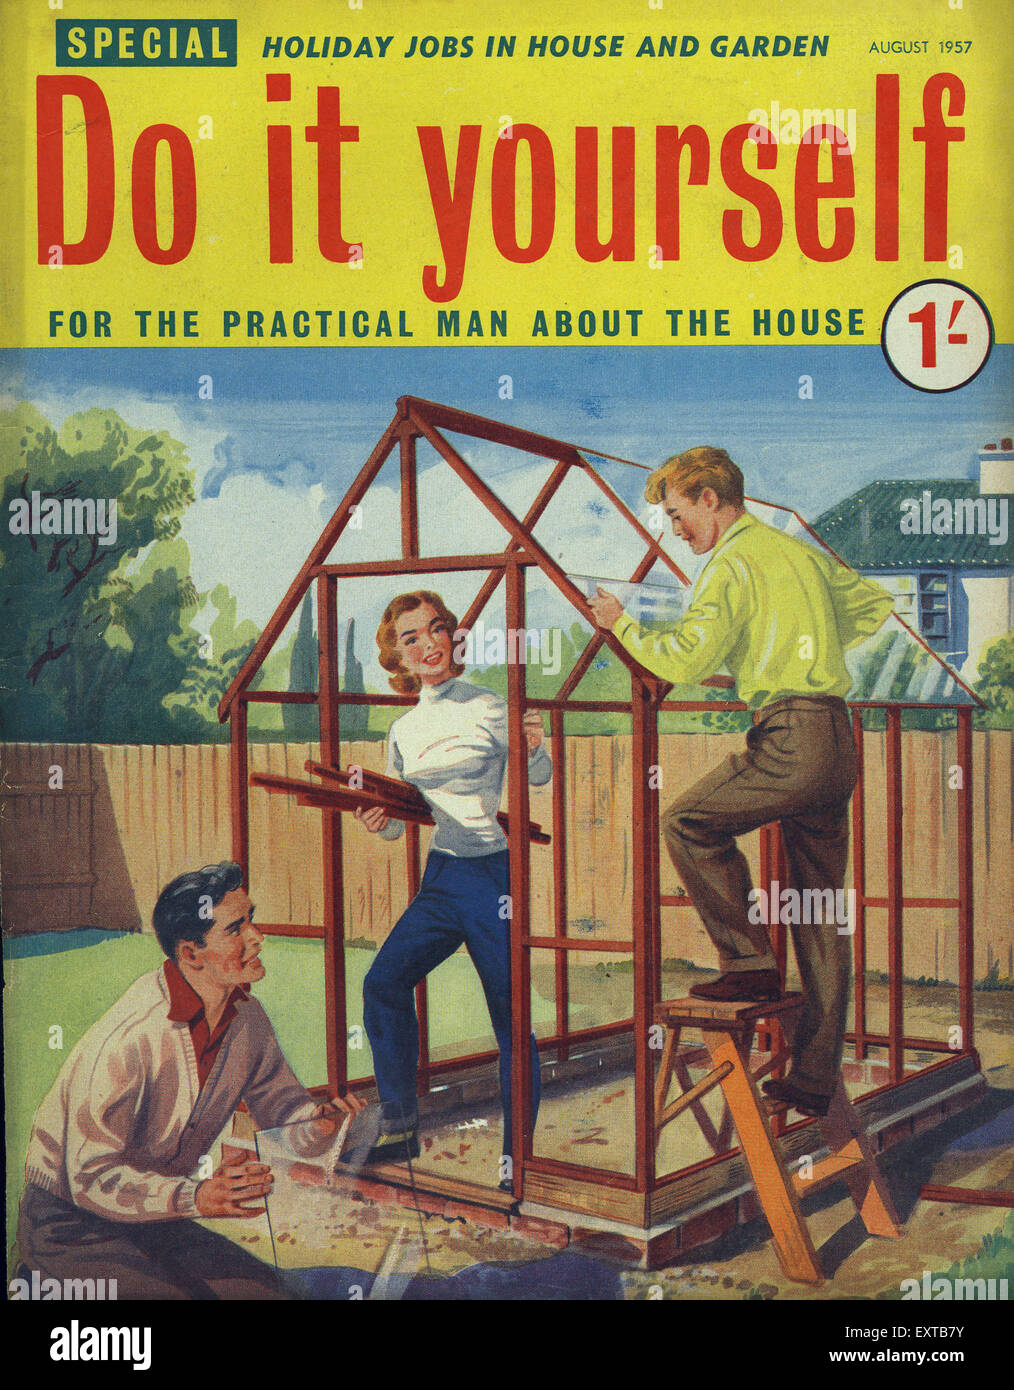 1950s uk do it yourself magazine cover stock photo 85358223 alamy 1950s uk do it yourself magazine cover solutioingenieria Gallery